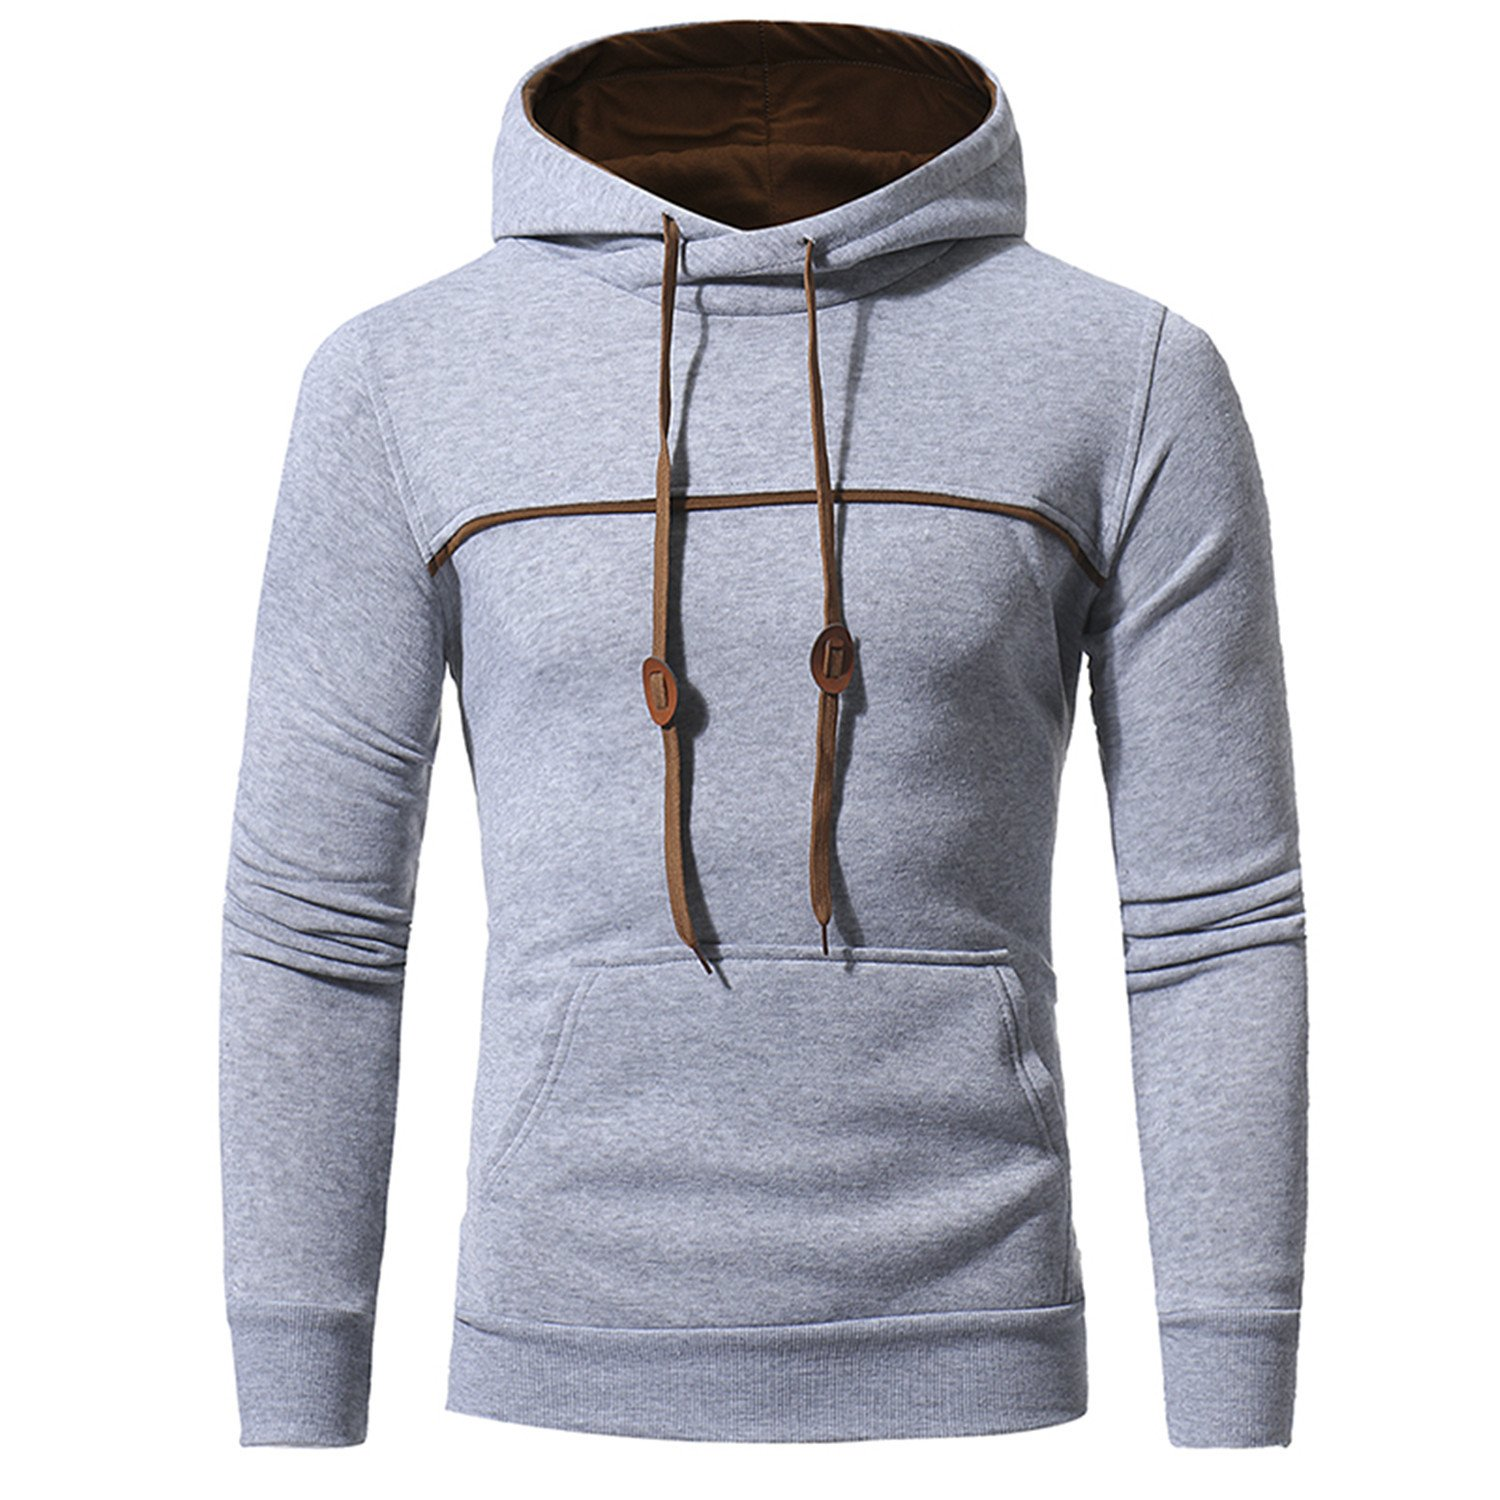 Amazon.com: RENXINGLIN Cosy Men Sudaderas Hombre Hip Hop Mens Brand Solid Color Pullover Hoodie Sweatshirt: Clothing